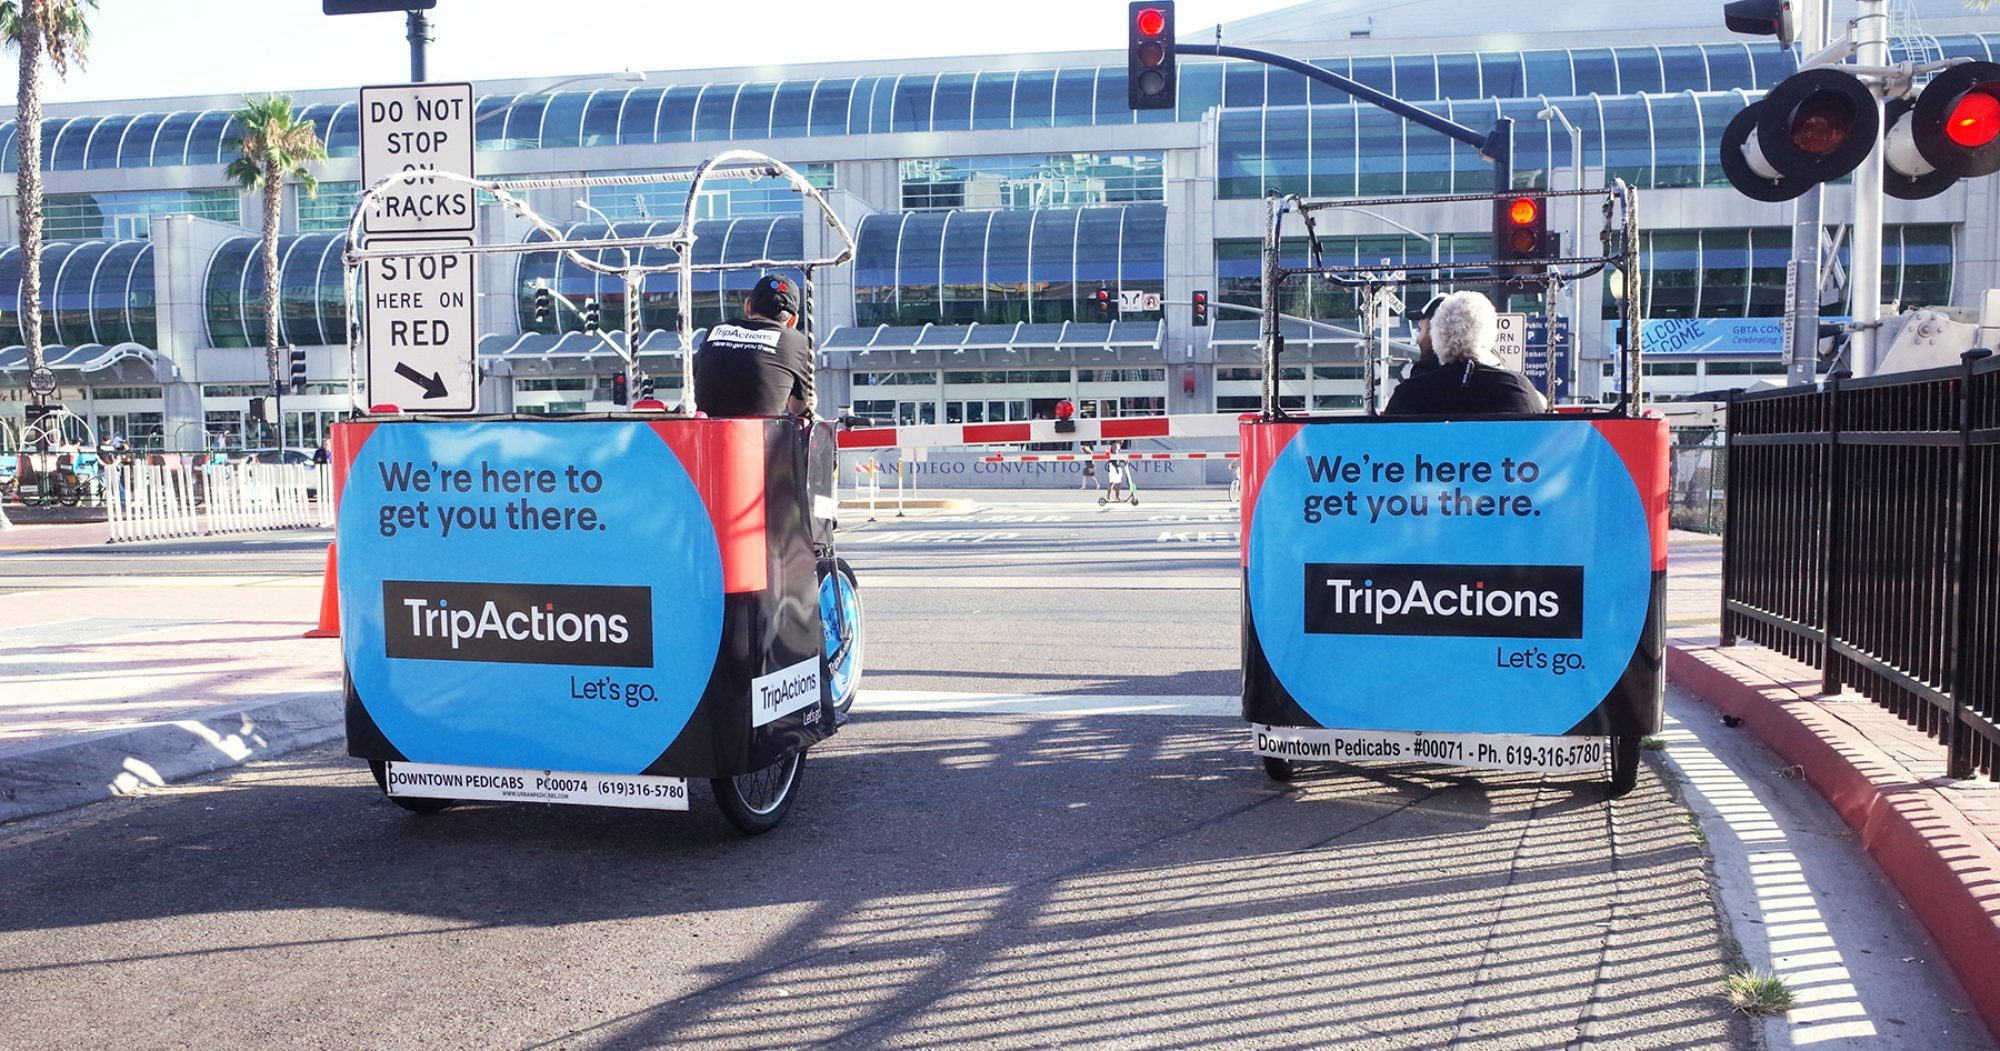 San Diego pedicab Convention Center advertising